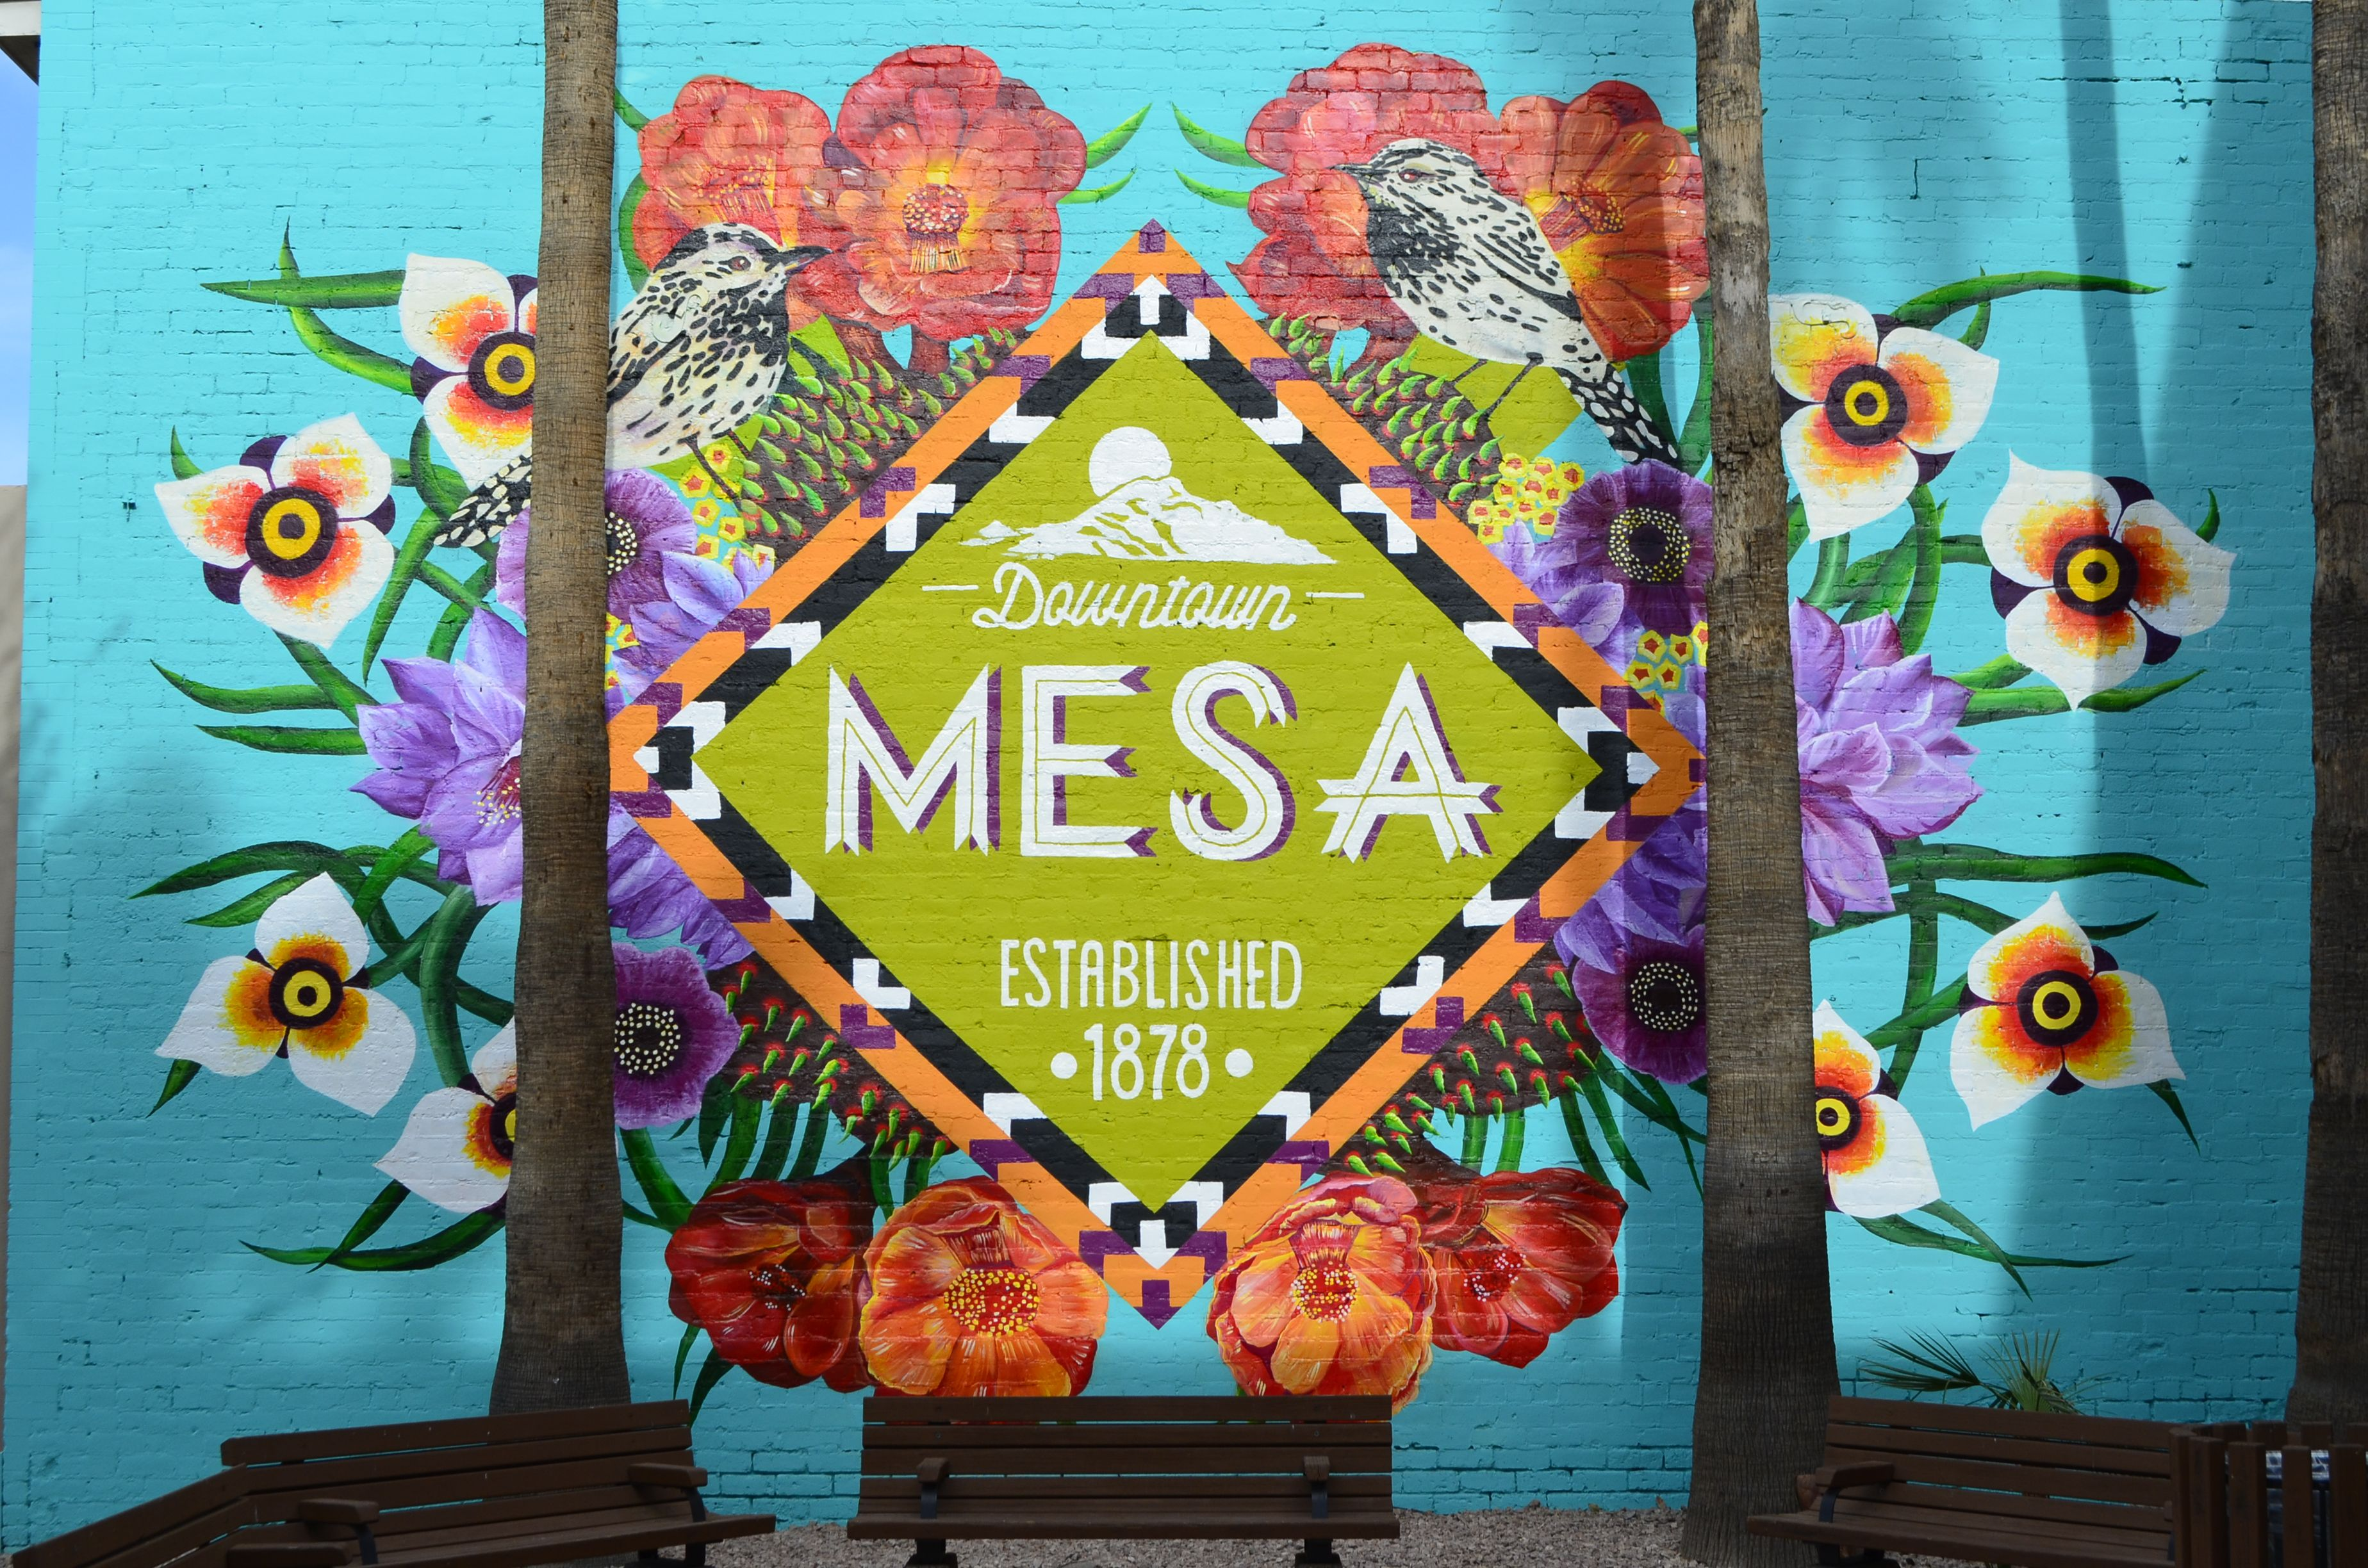 Downtown mesa is a vibrant community with something for